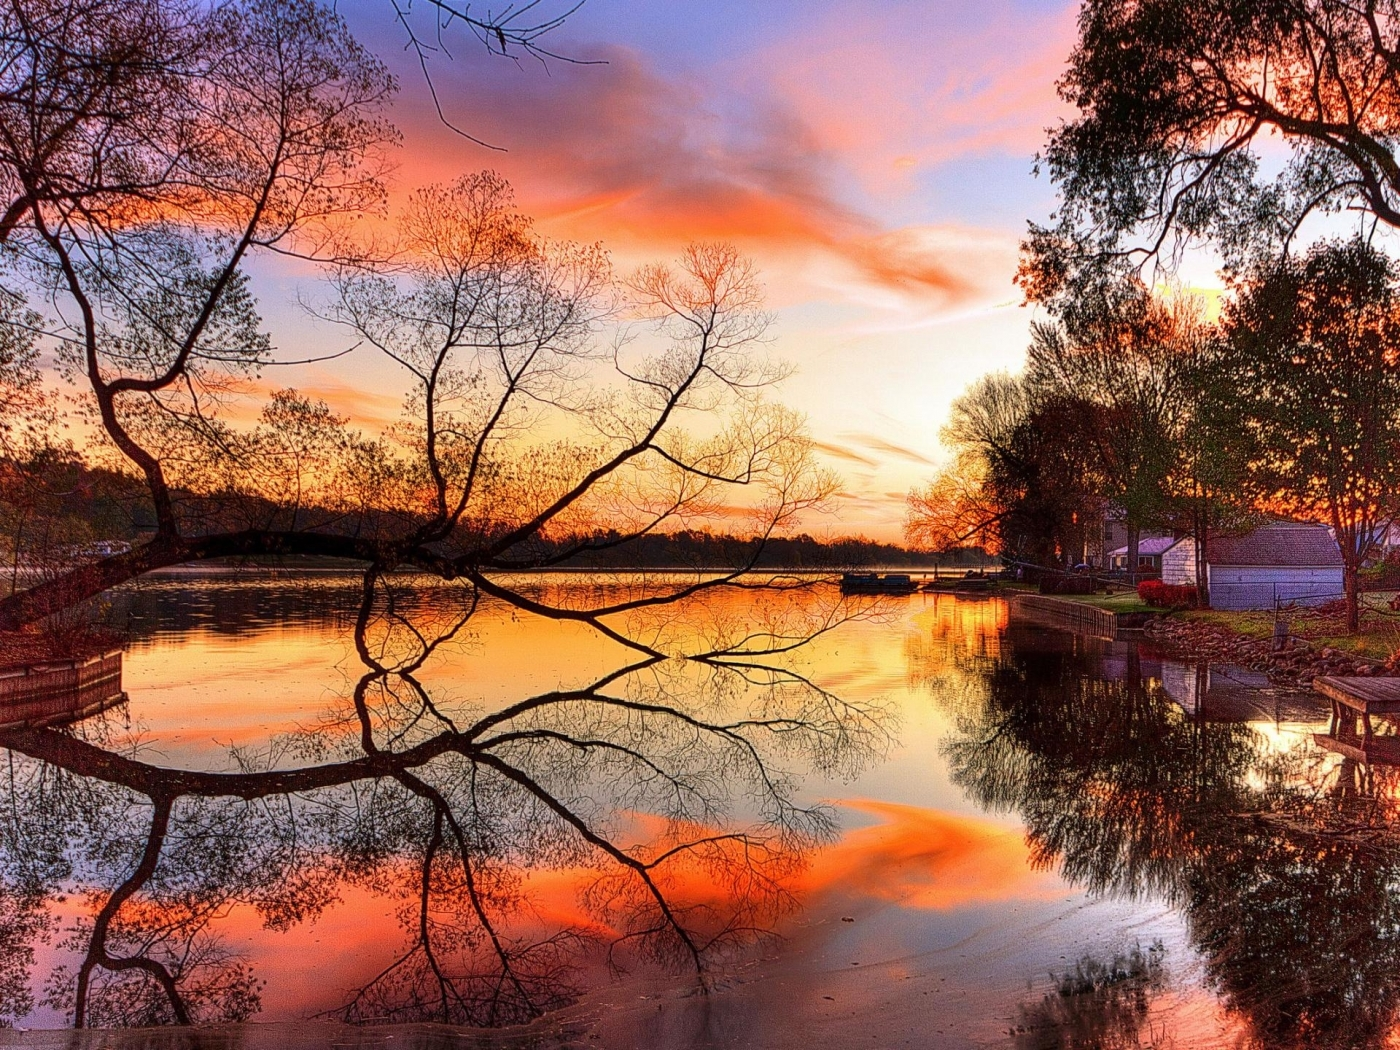 49163 download wallpaper Landscape, Nature, Lakes screensavers and pictures for free